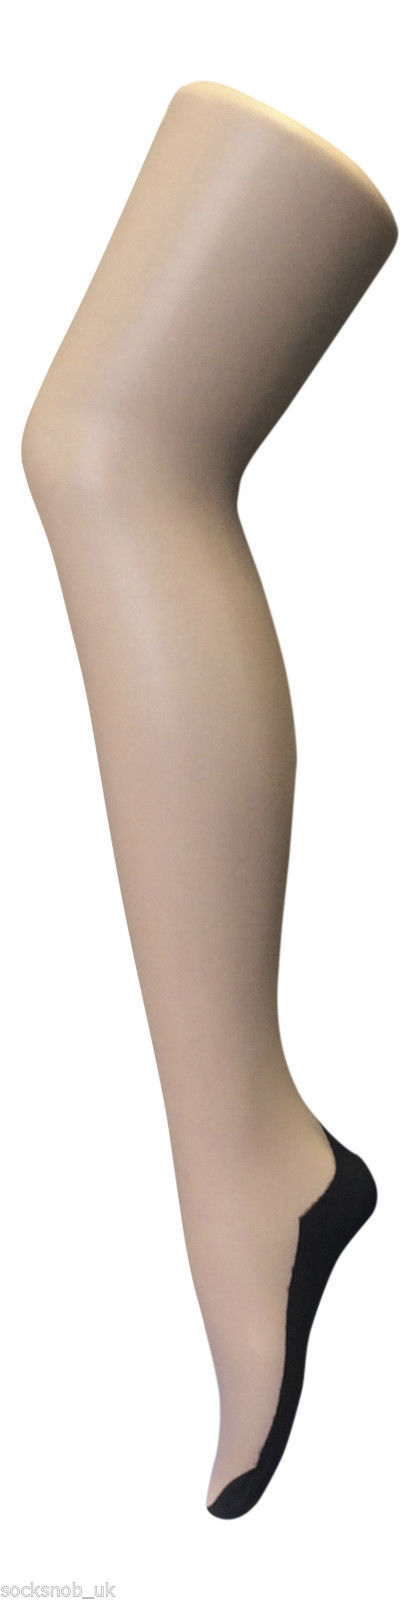 Sock Snob Retro Back Seam Designer Tights Size 8-14 uk, 36-42 eur Nude/Black M